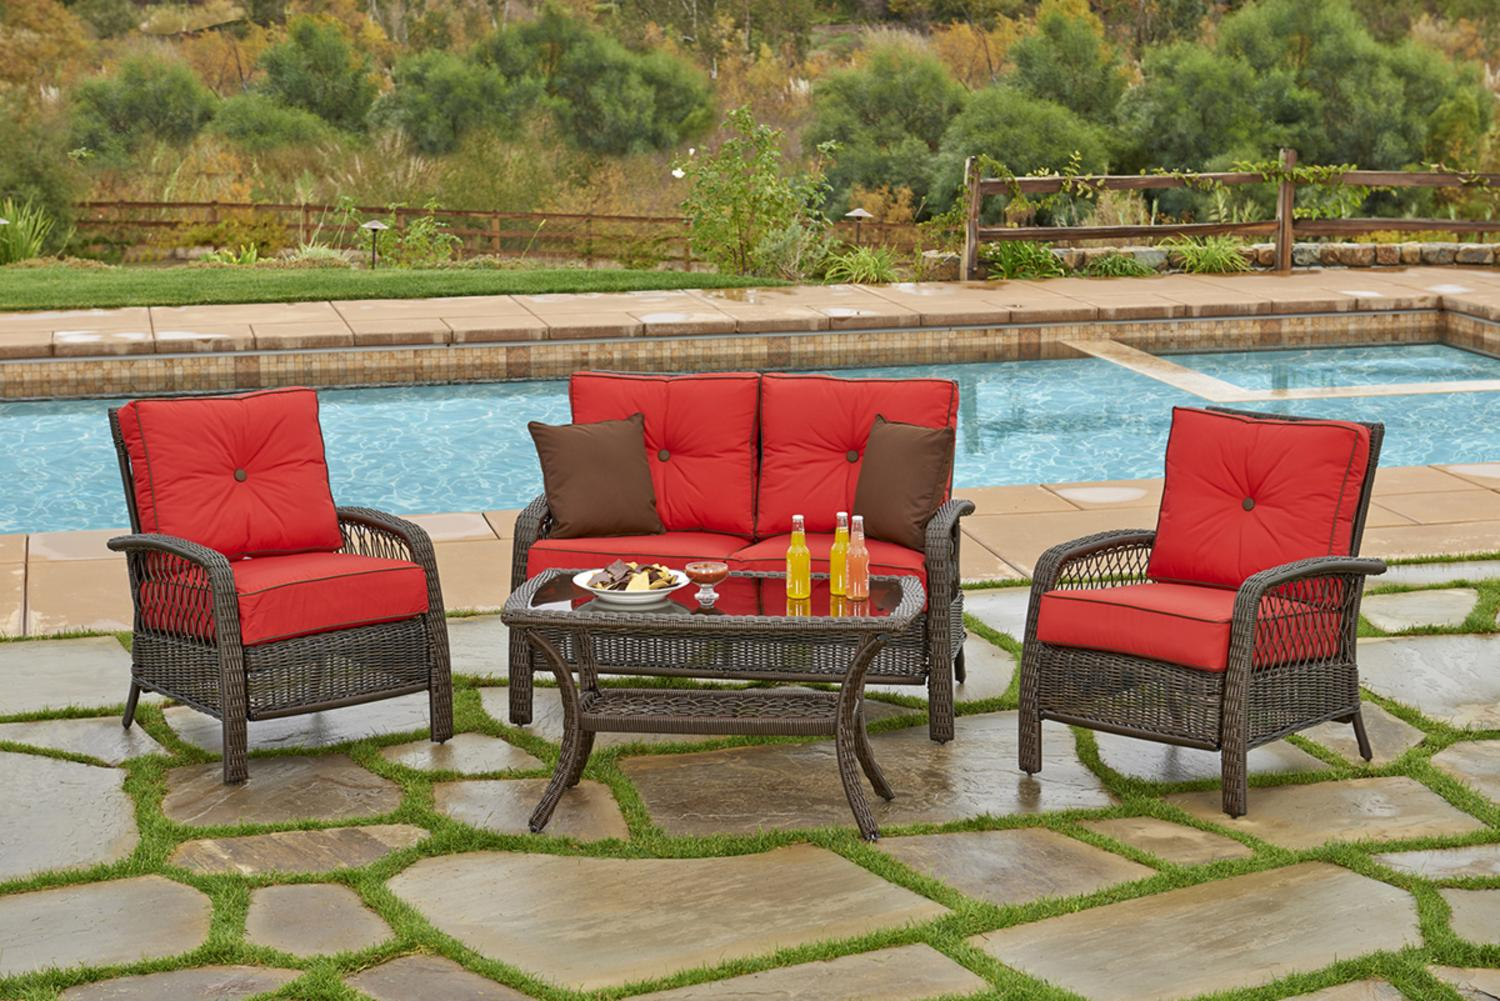 4 Piece Beacon Cappuccino Resin Wicker Patio Loveseat, Chairs U0026 Table  Furniture Set